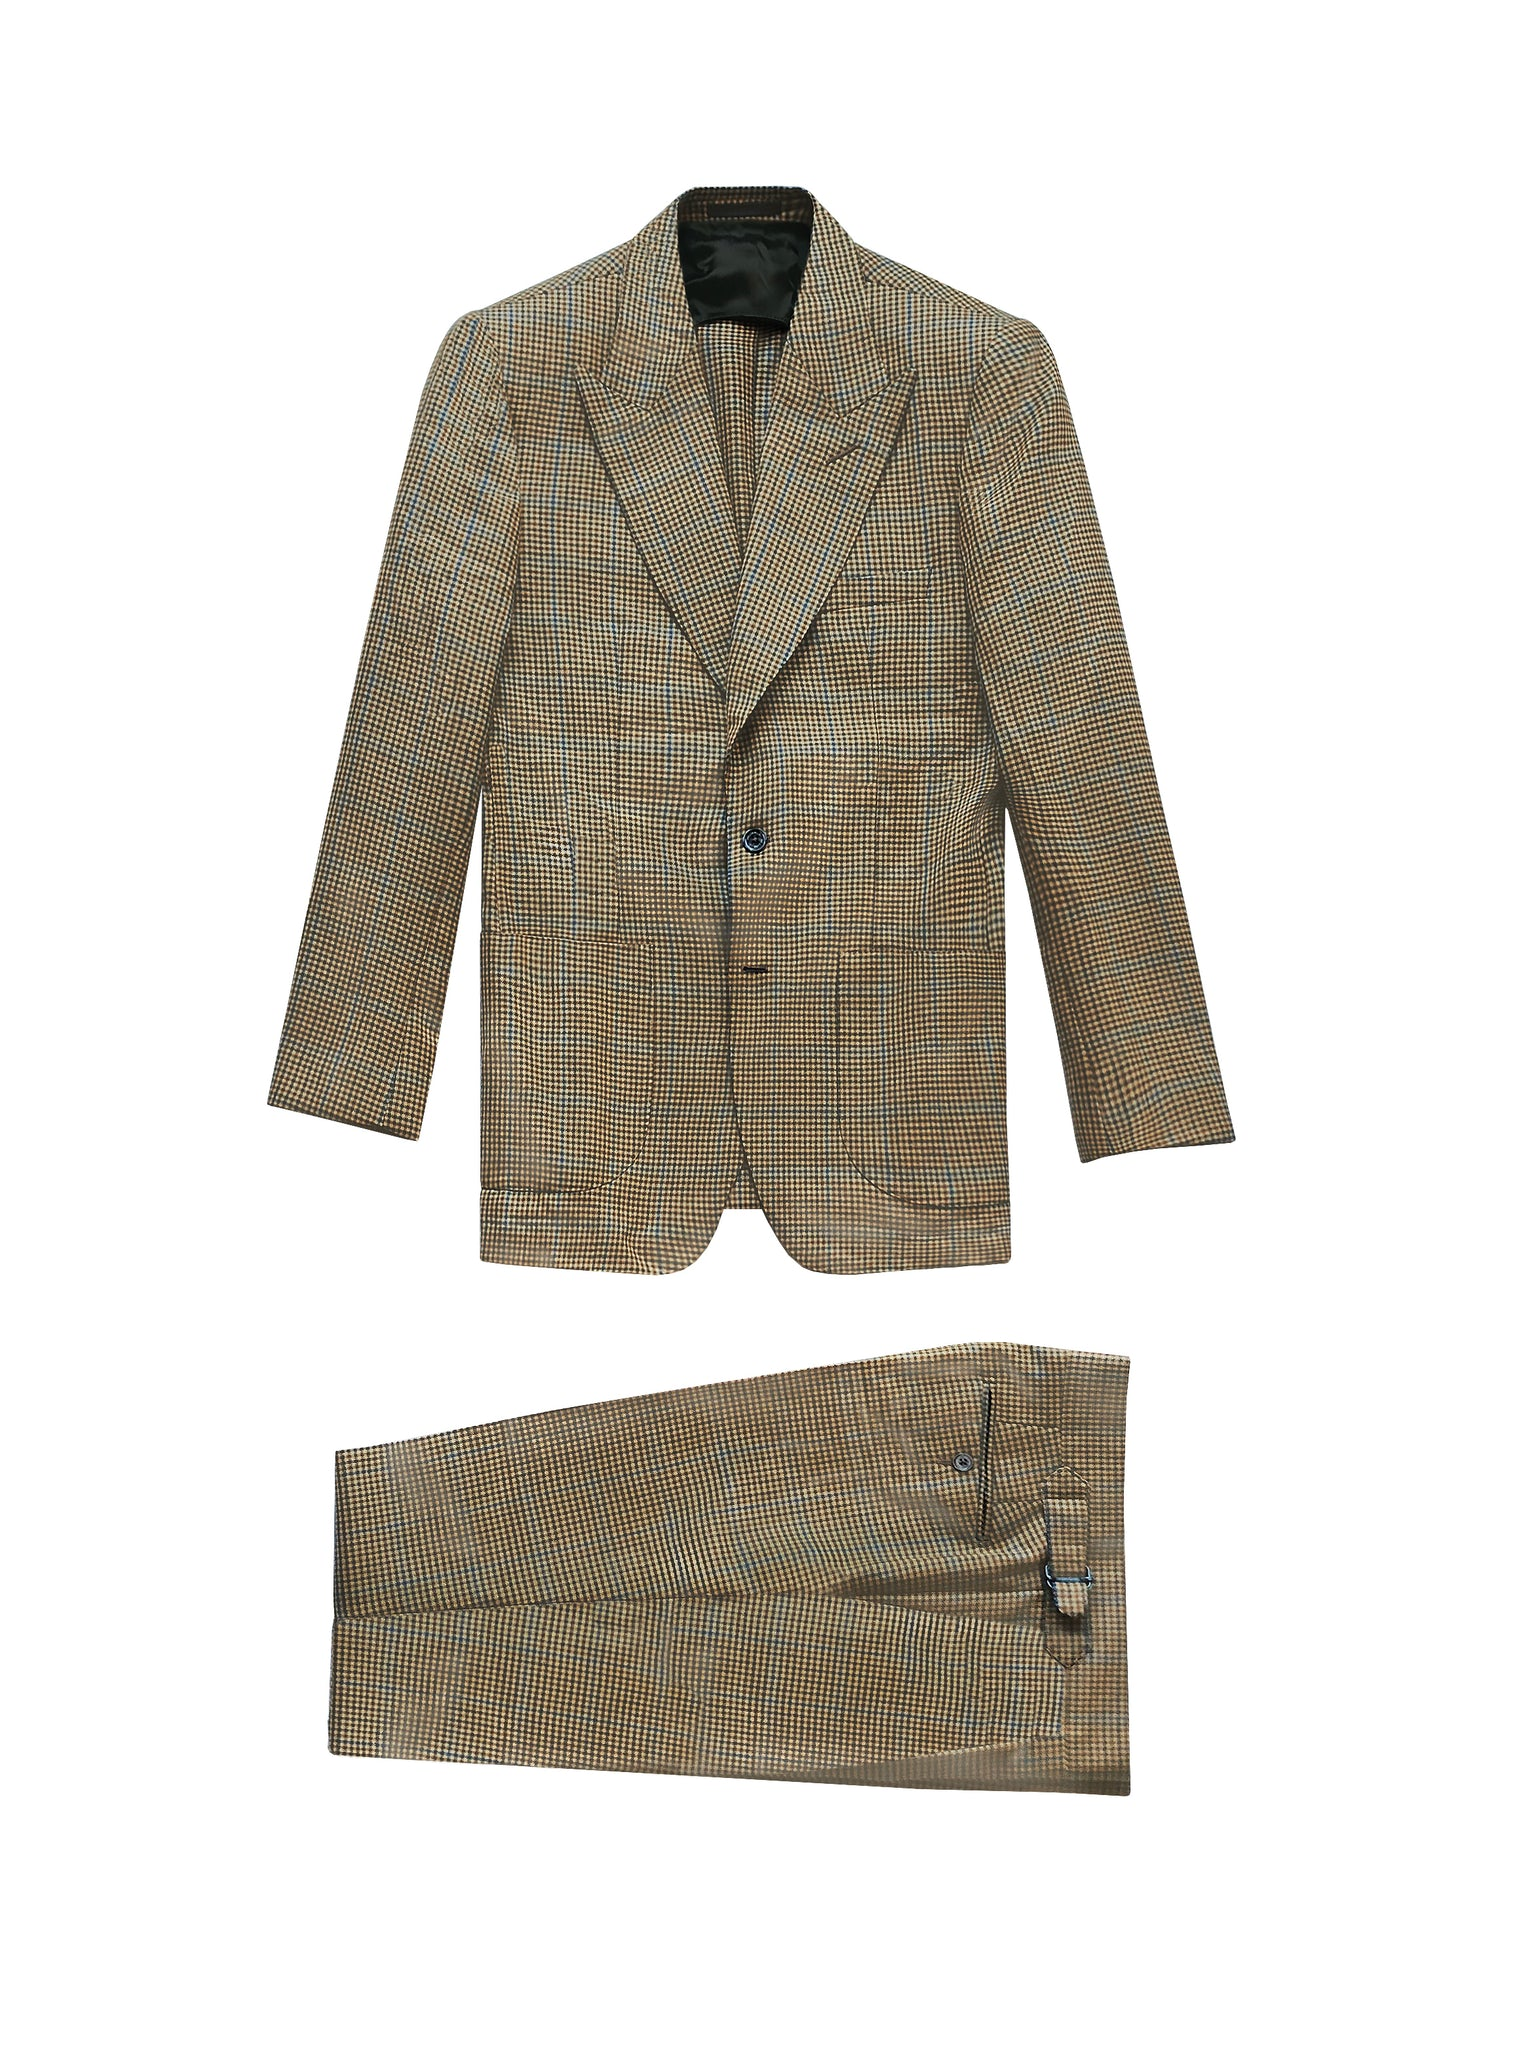 (SAMPLE SALE - 40US) BROWN HOUNDSTOOTH WOOL THE ERA SUIT